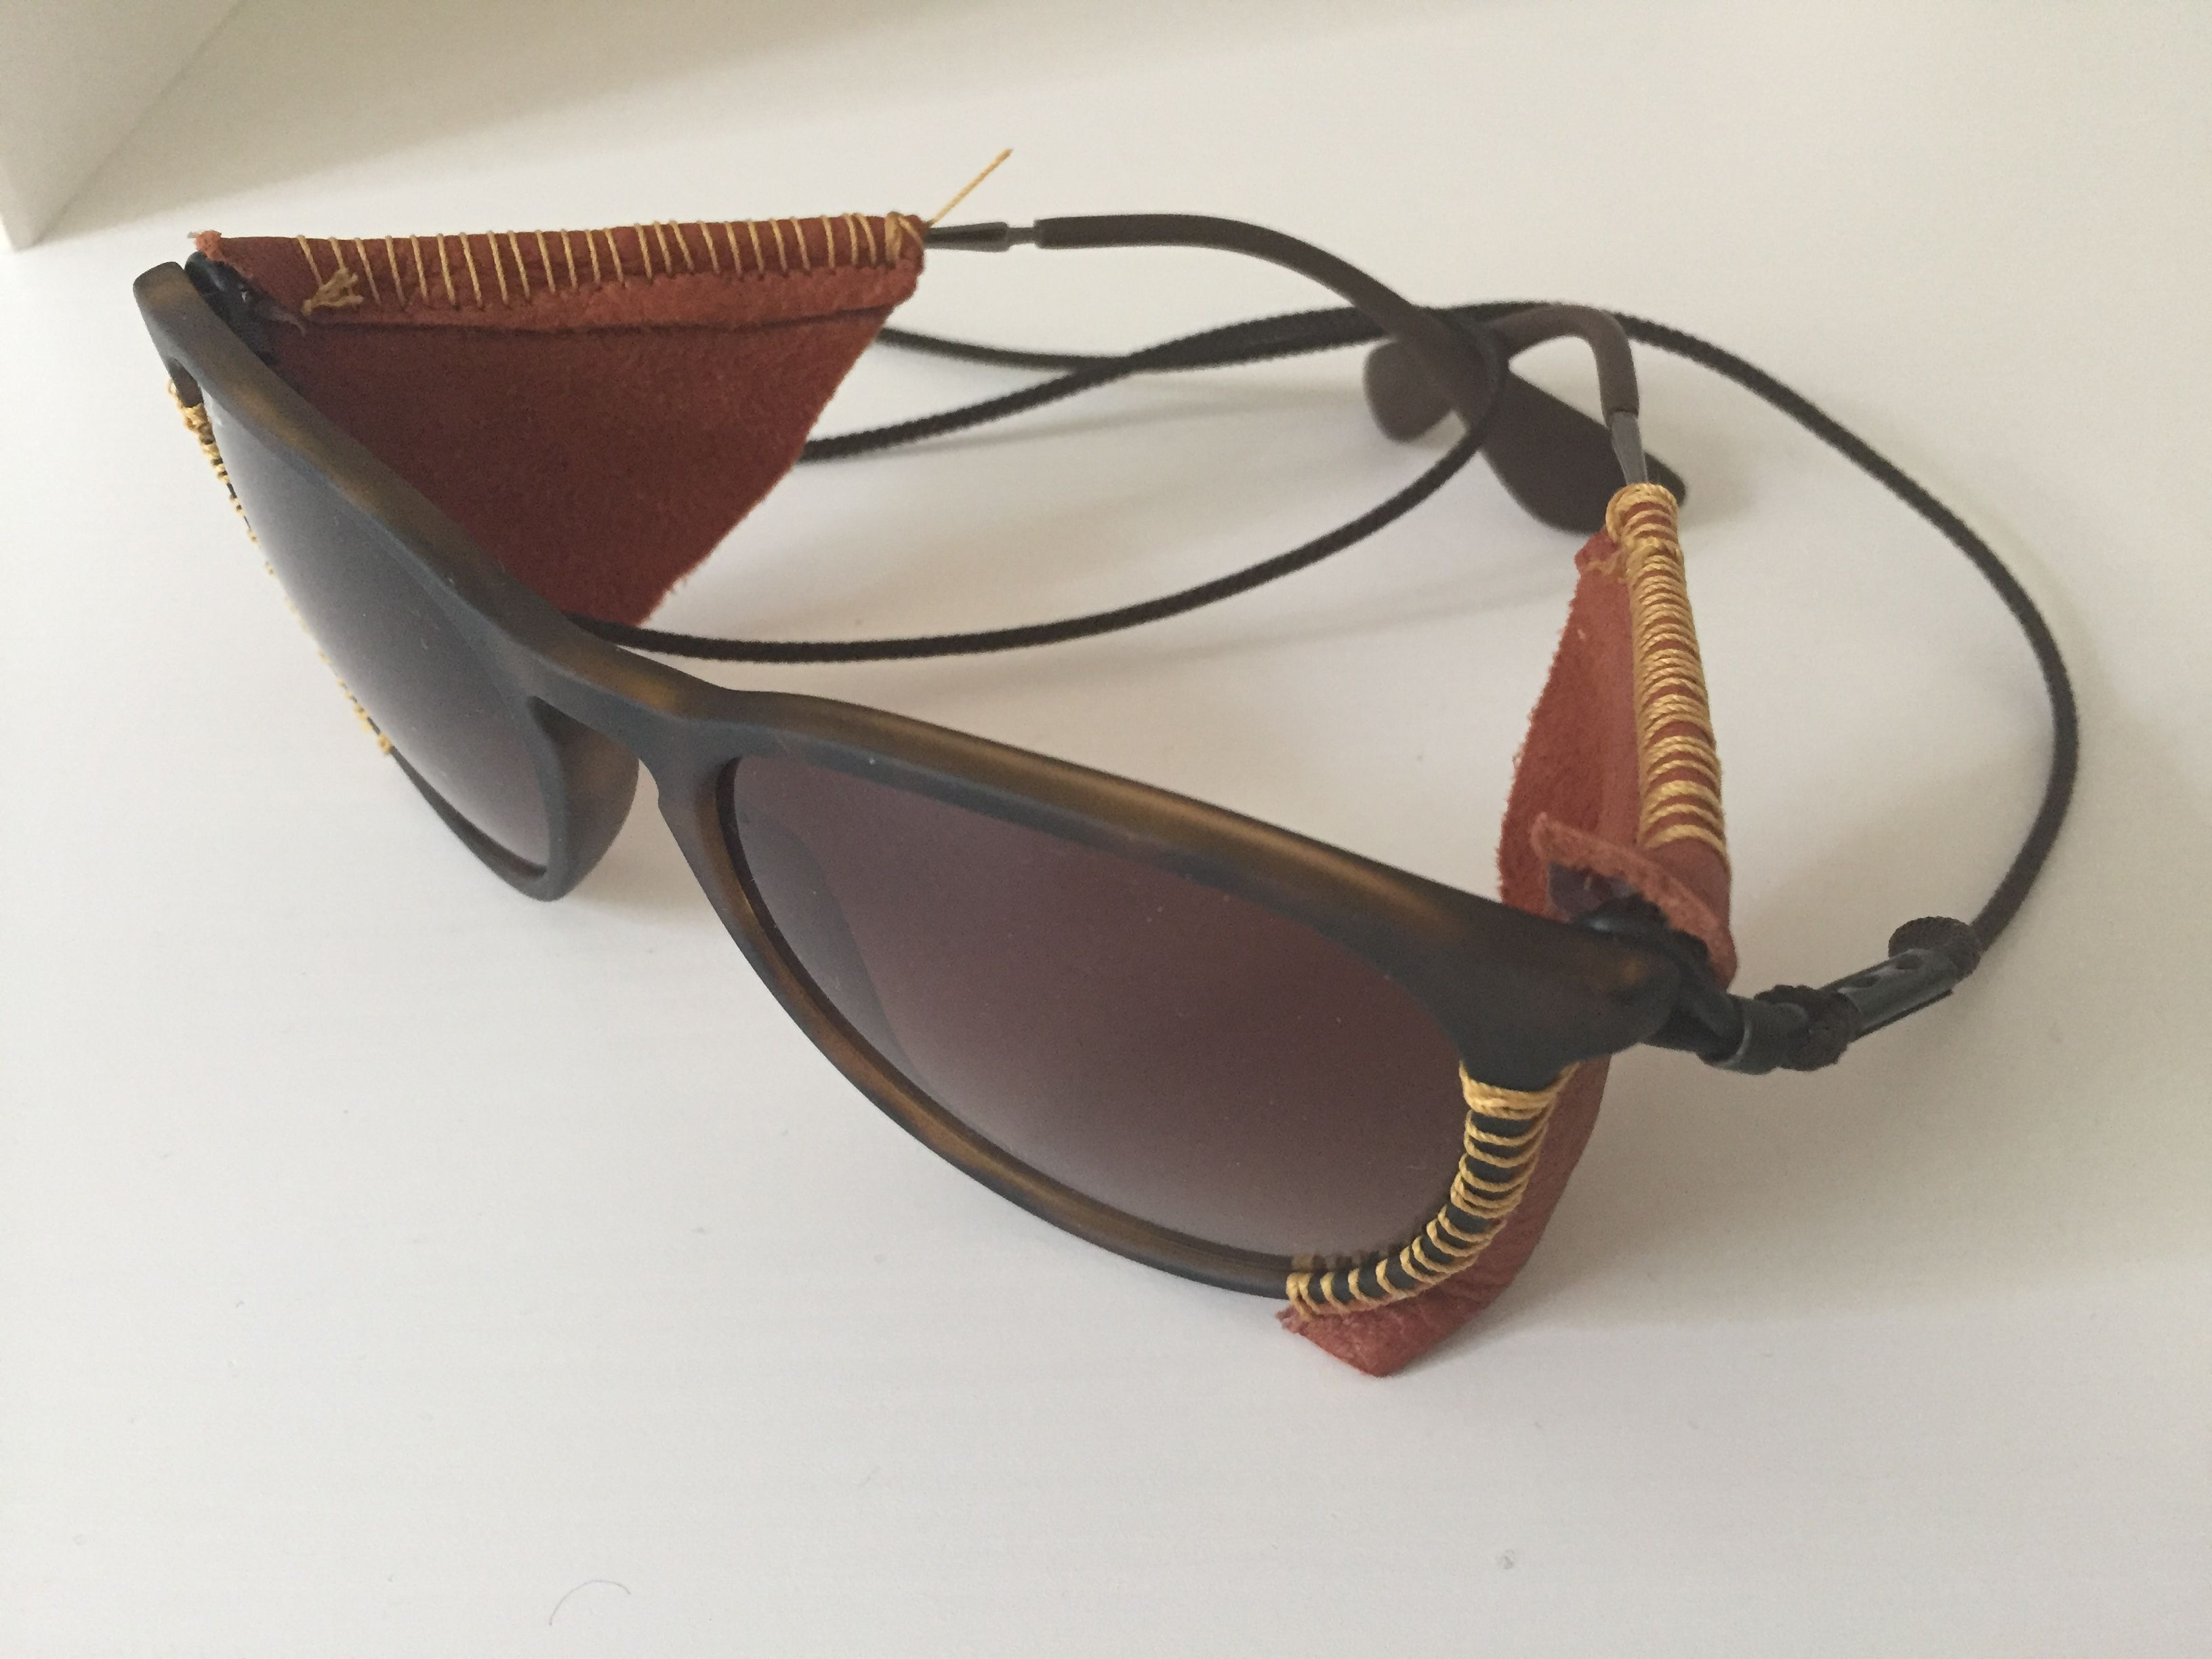 46cca975e01a5 Home made DIY leather sun shields, with a pair of old rayban sunglasses.  Beware